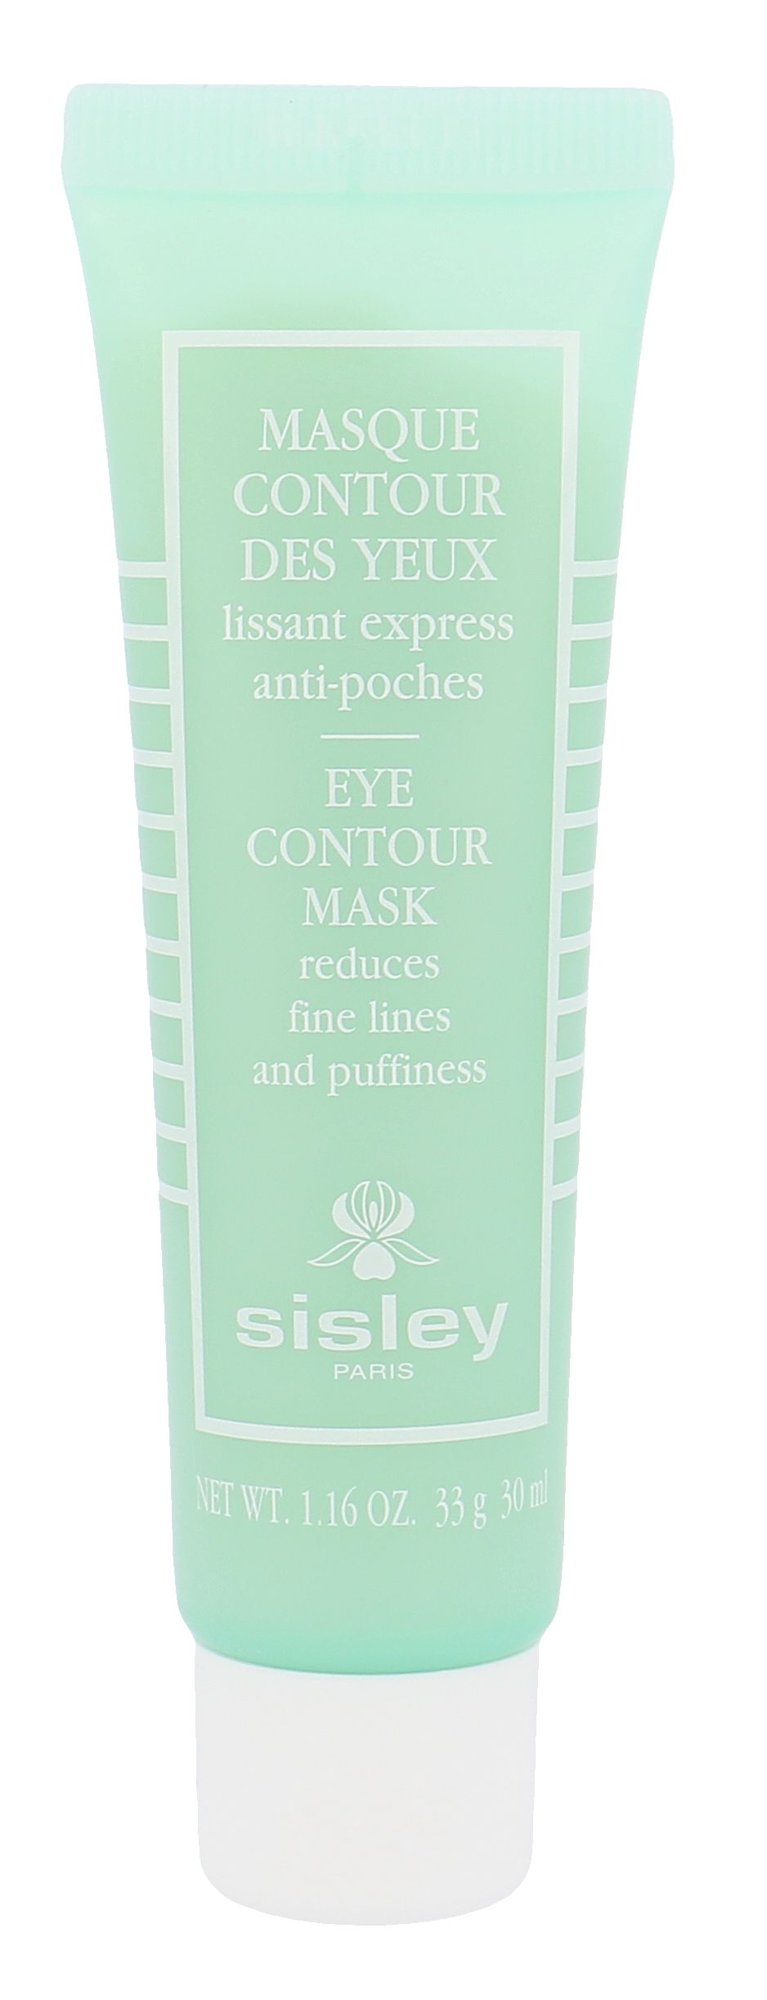 Sisley Eye Contour Mask Cosmetic 30ml